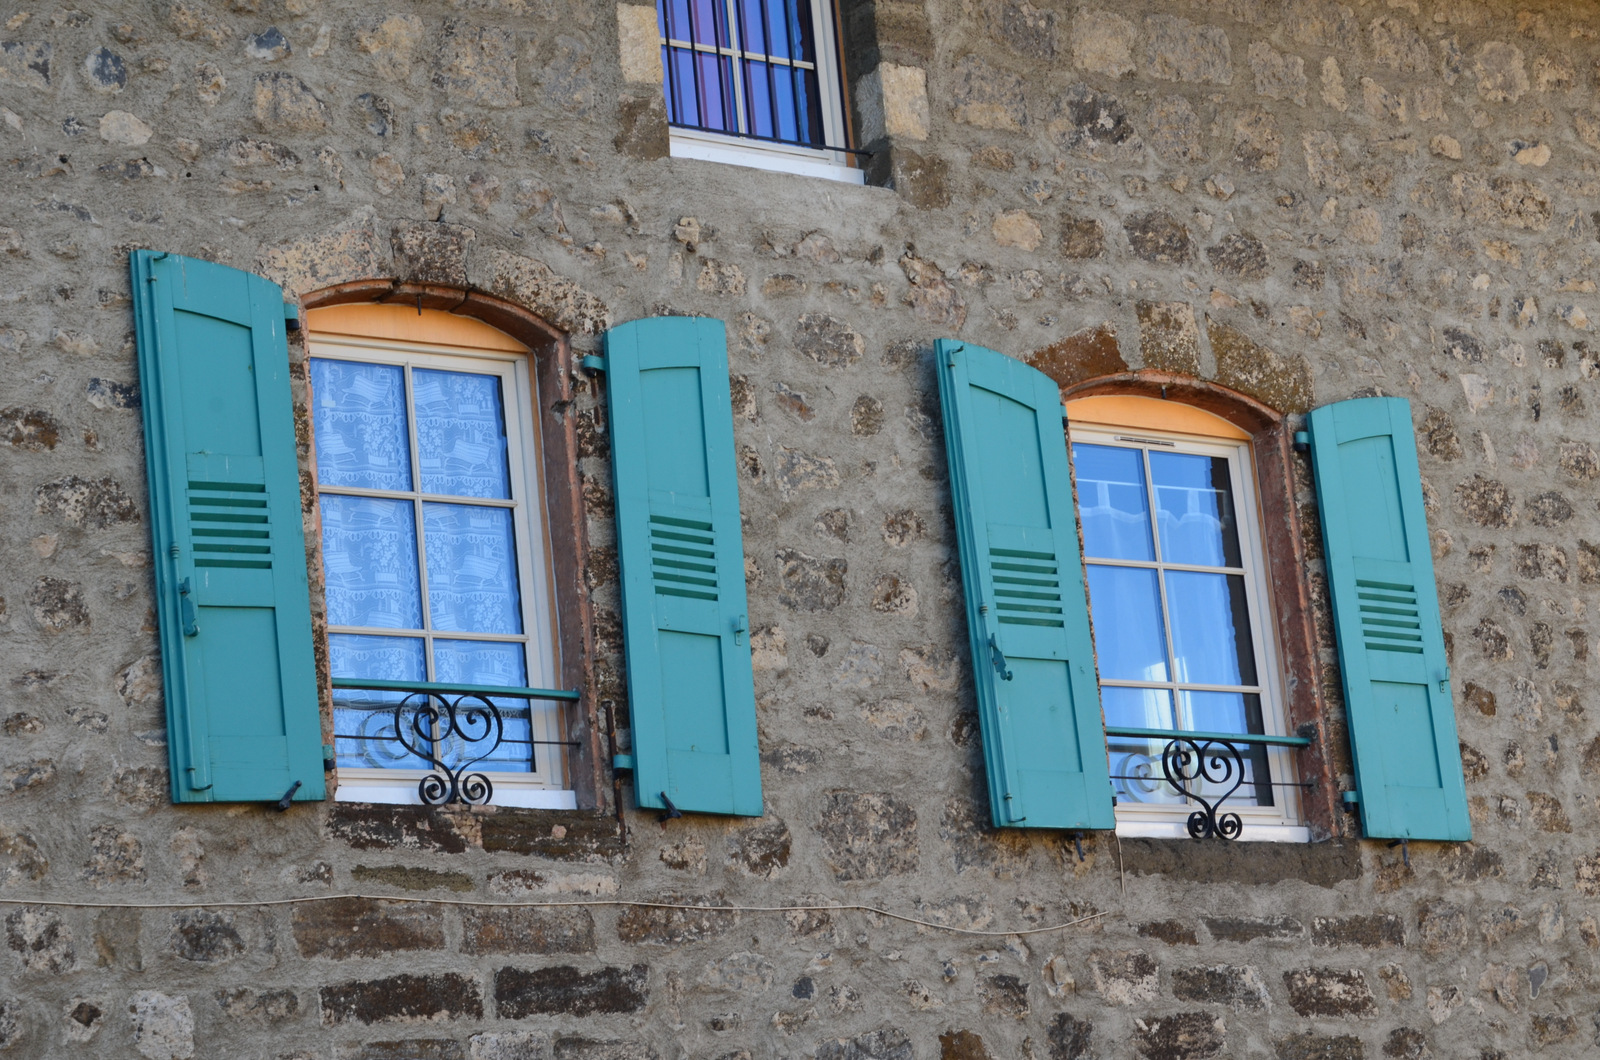 Seagreen shutters and heartshaped wrought iron on stone house. Charm!